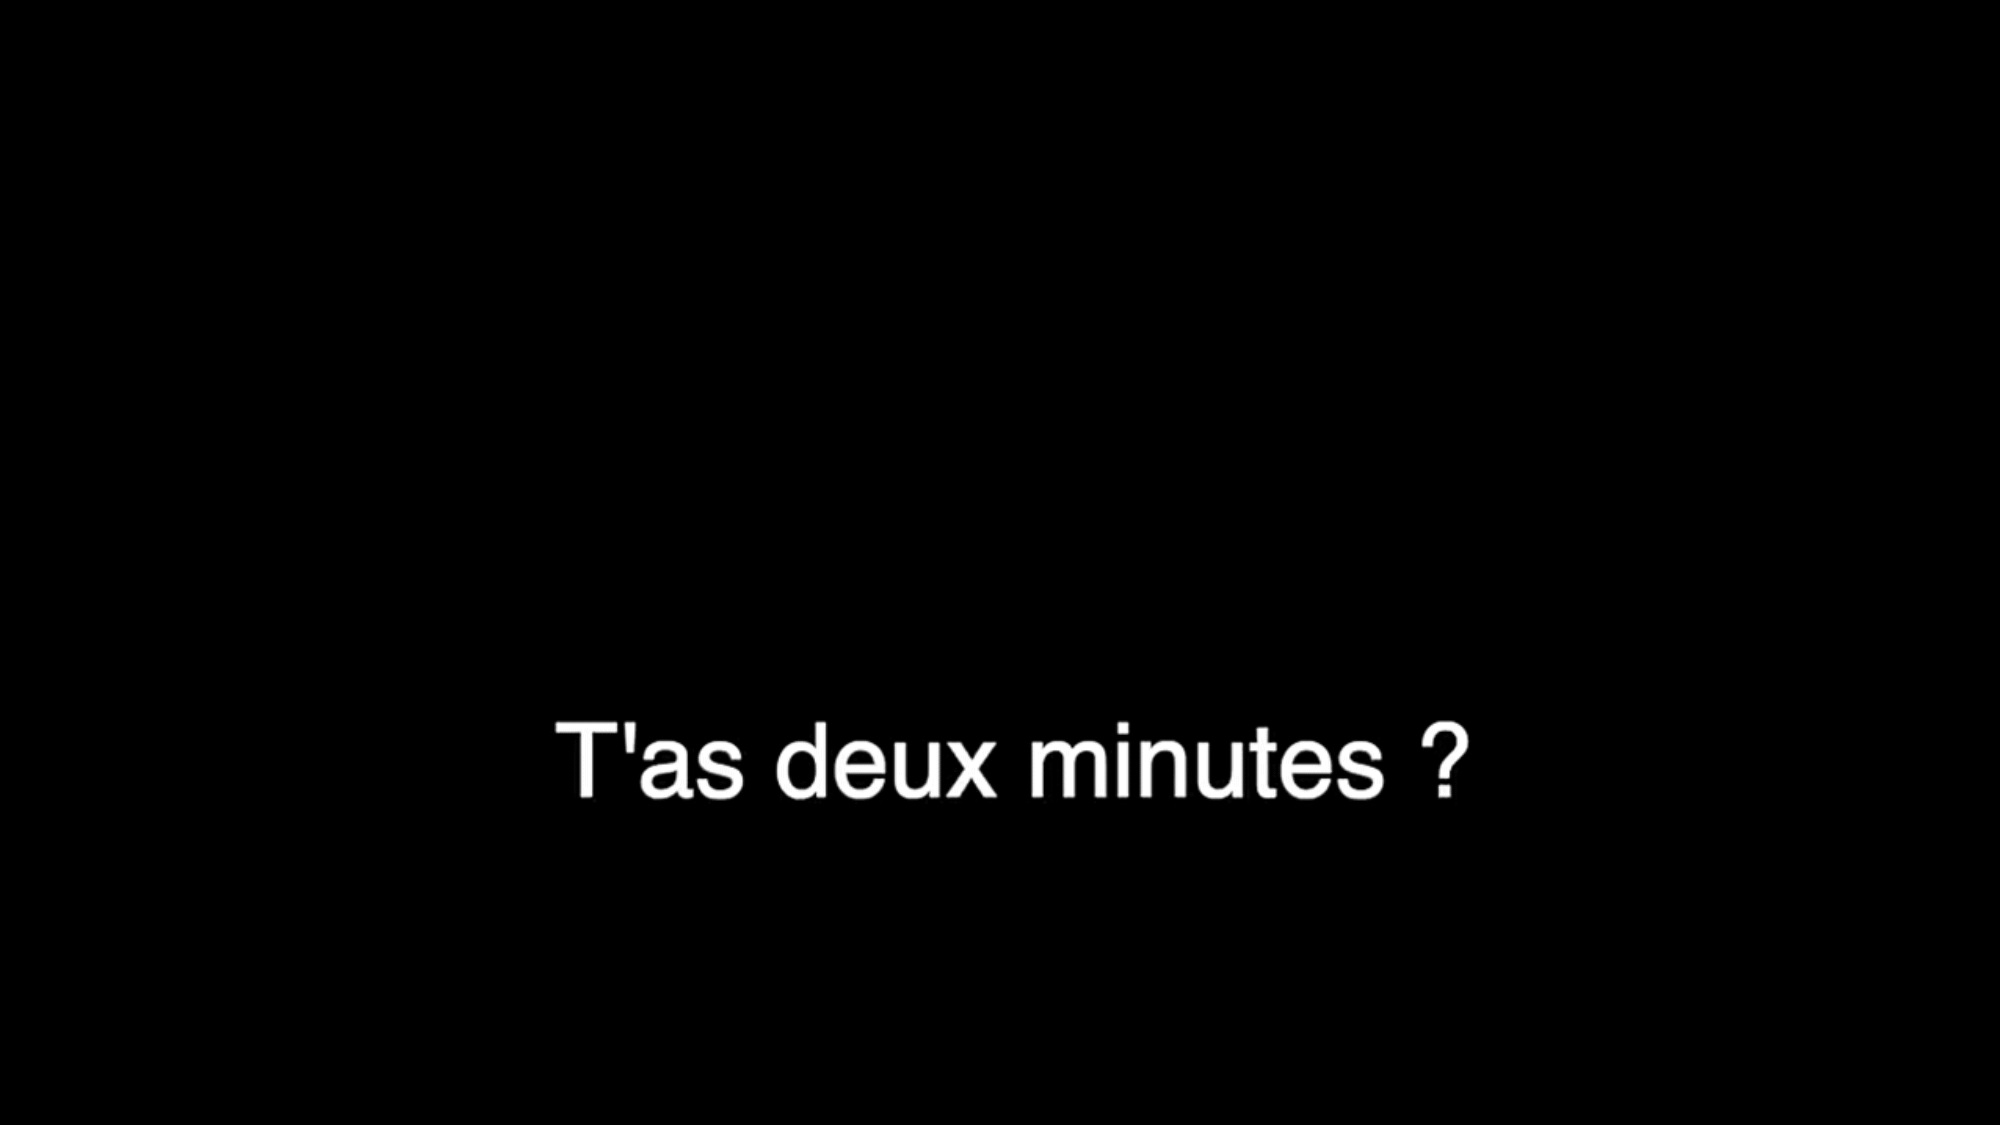 T'as 2 minutes